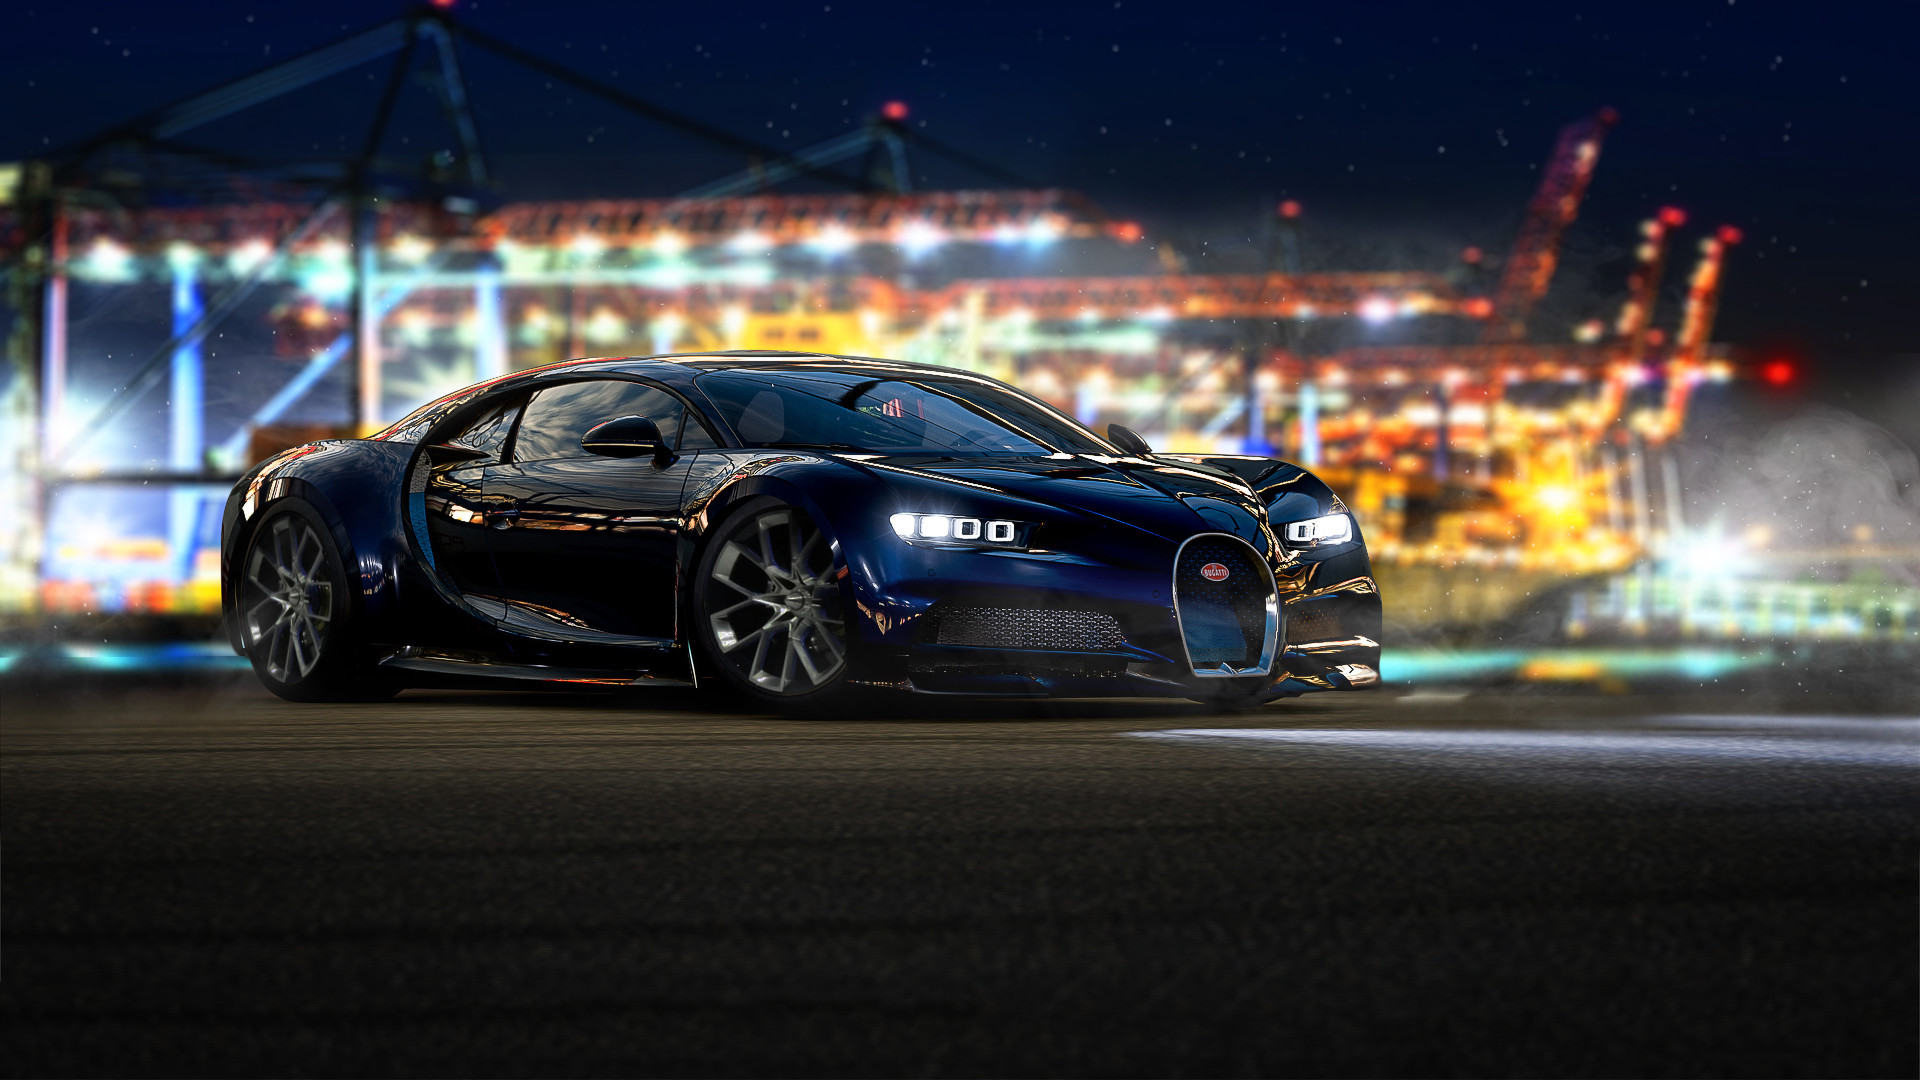 Forza Motorsport 7 Wallpapers Ultra Hd Gaming Backgrounds: Forza Motorsport 7 Bugatti, HD Games, 4k Wallpapers